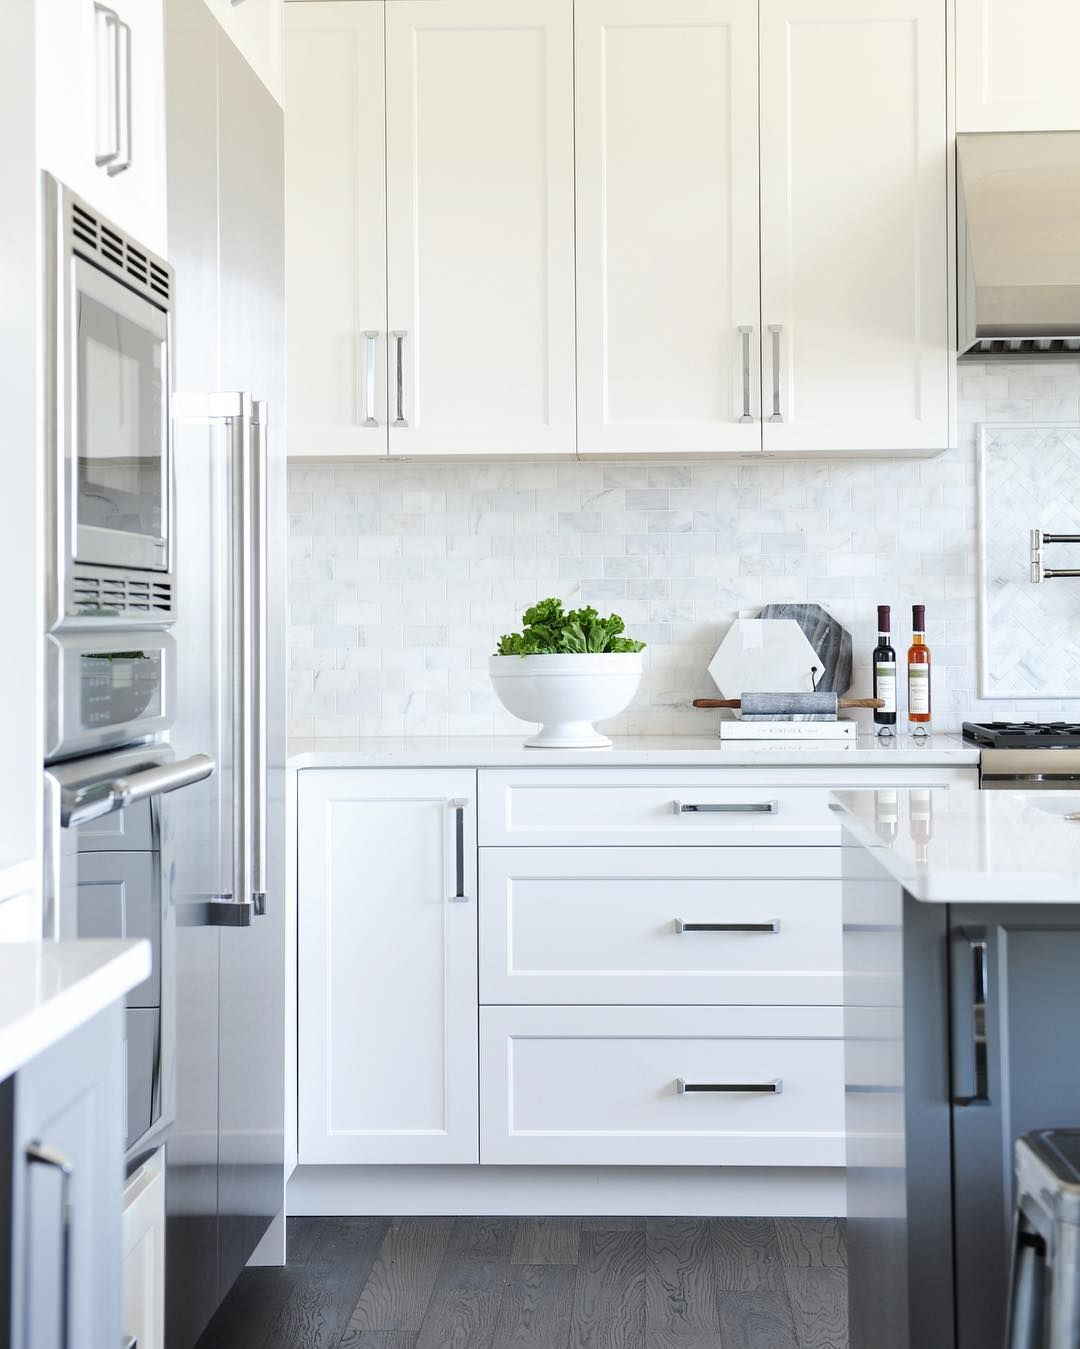 Dark Grey Cabinets Amanda Evans On Instagram I Love This Kitchen White